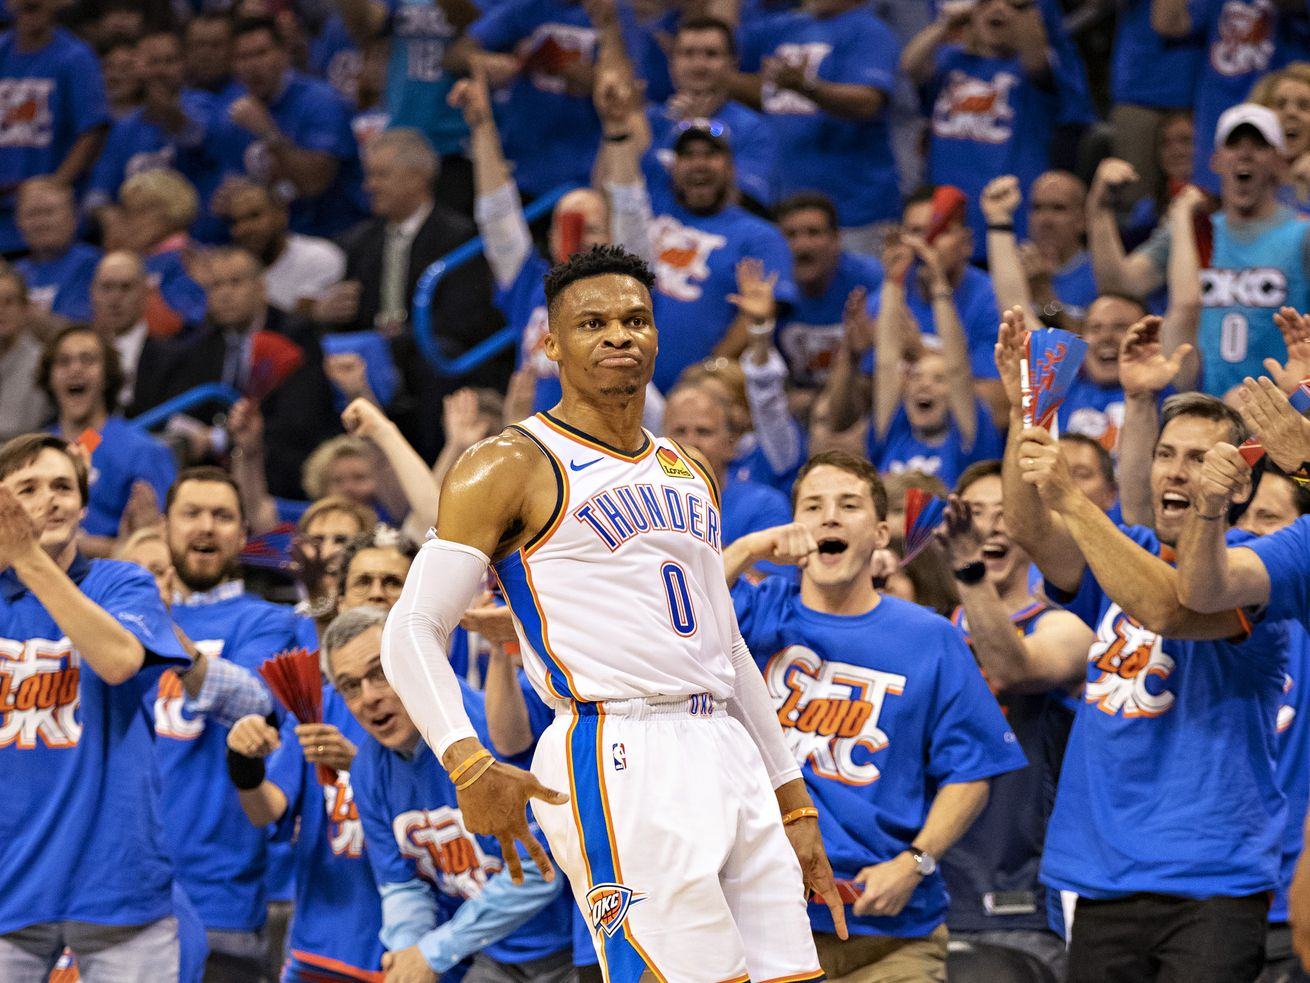 Russell Westbrook celebrates after making a three-pointer during Game 3 of the Thunder's first-round playoff series against the Trail Blazers last season.